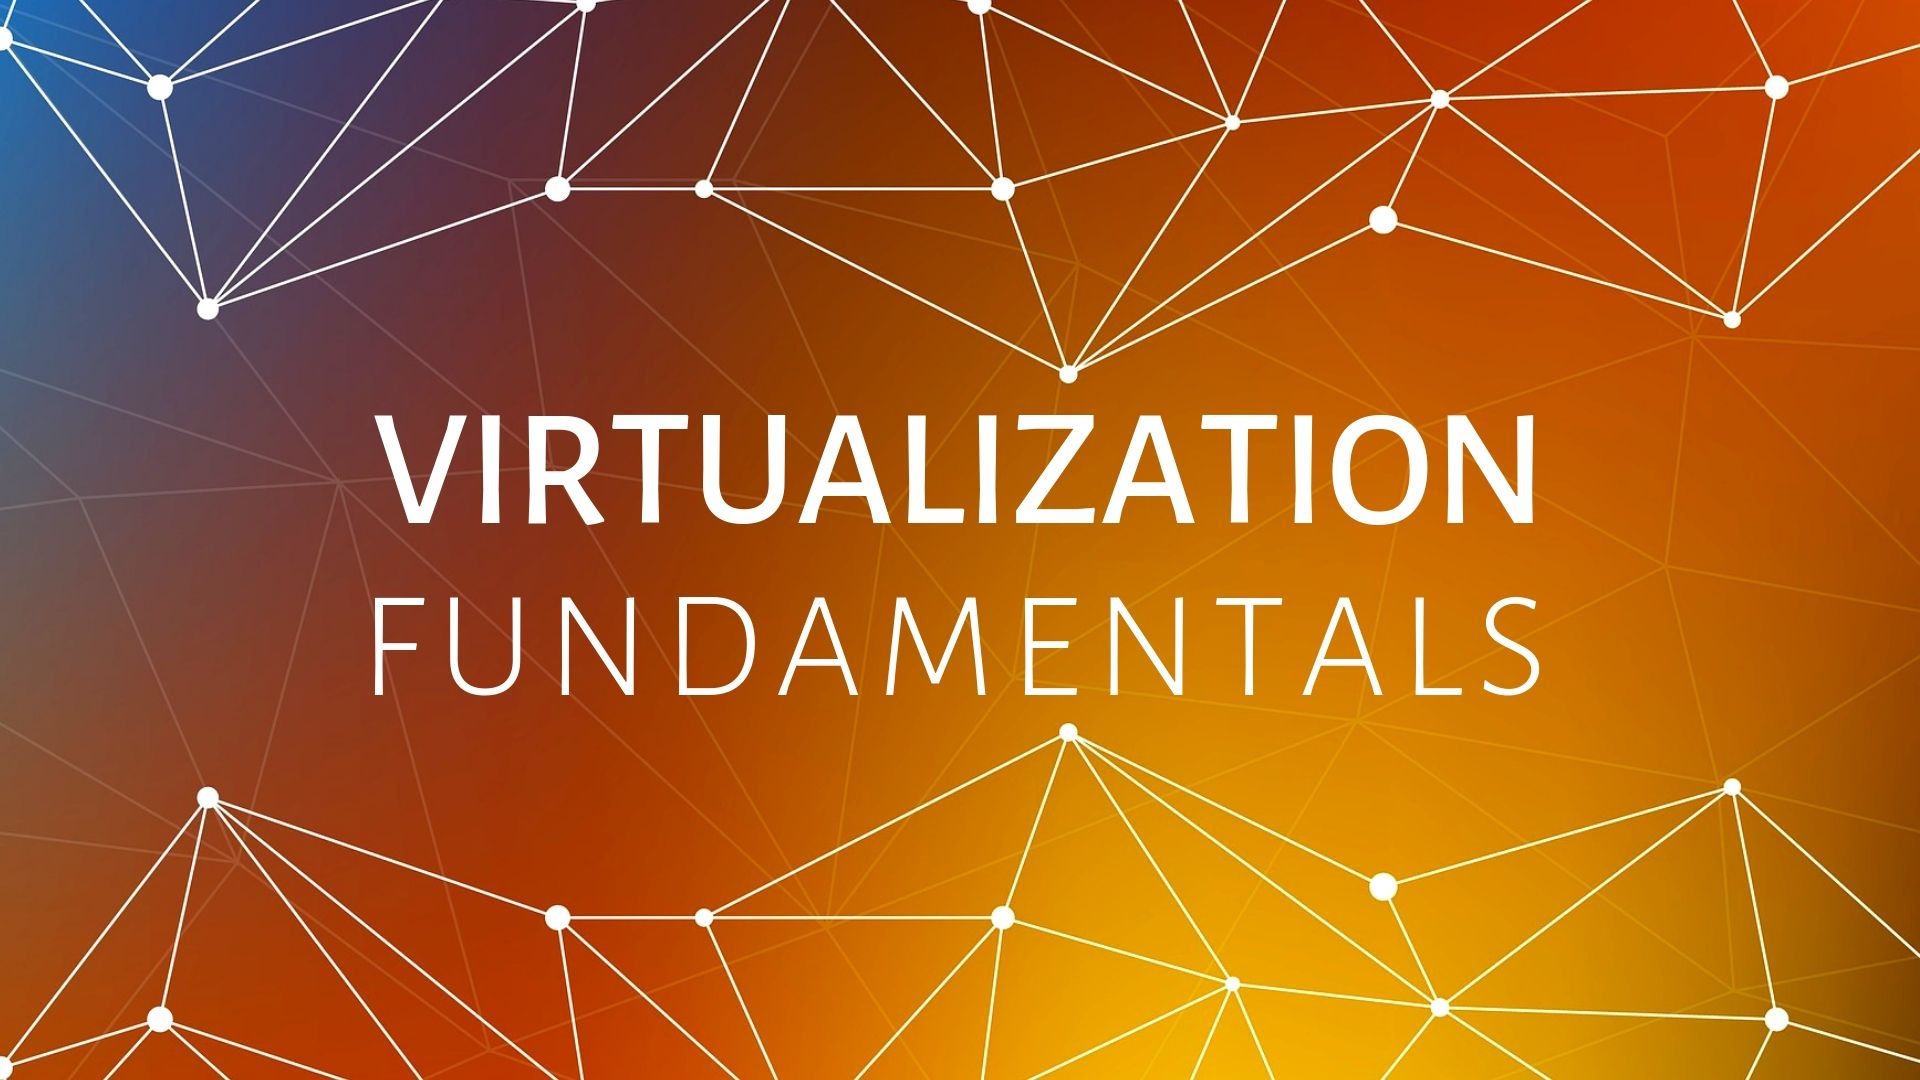 Virtualization Fundamentals VirtualizationFundamentals